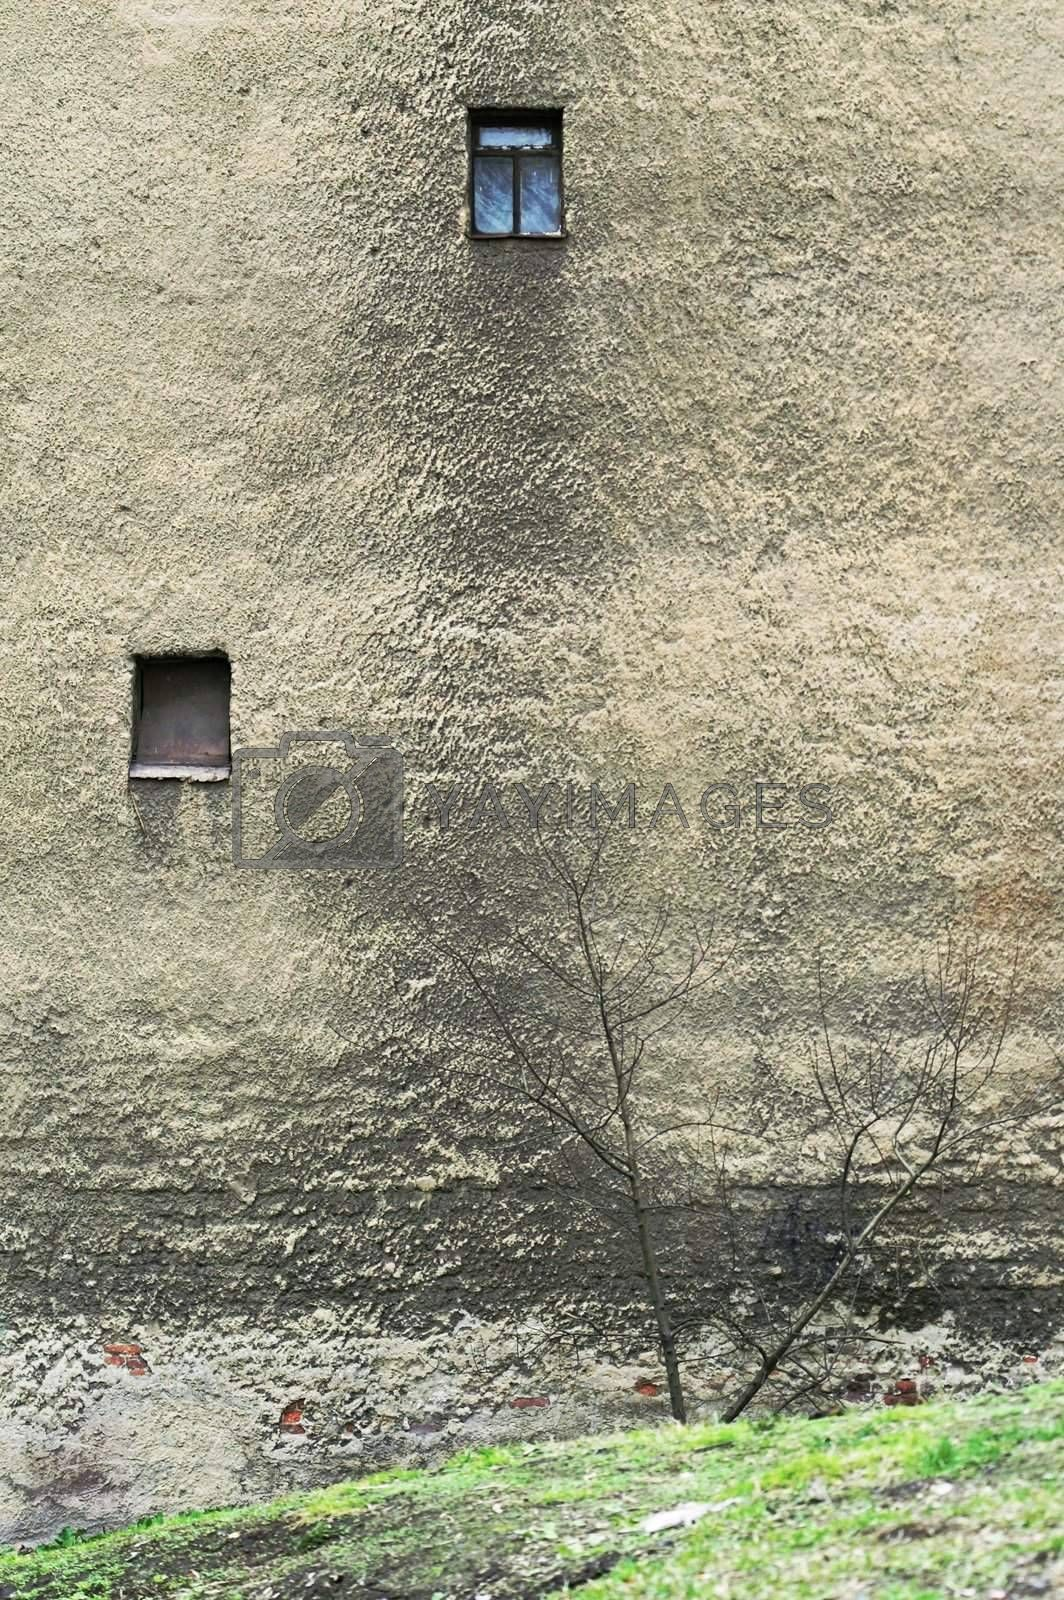 Wall of Old Residential Building